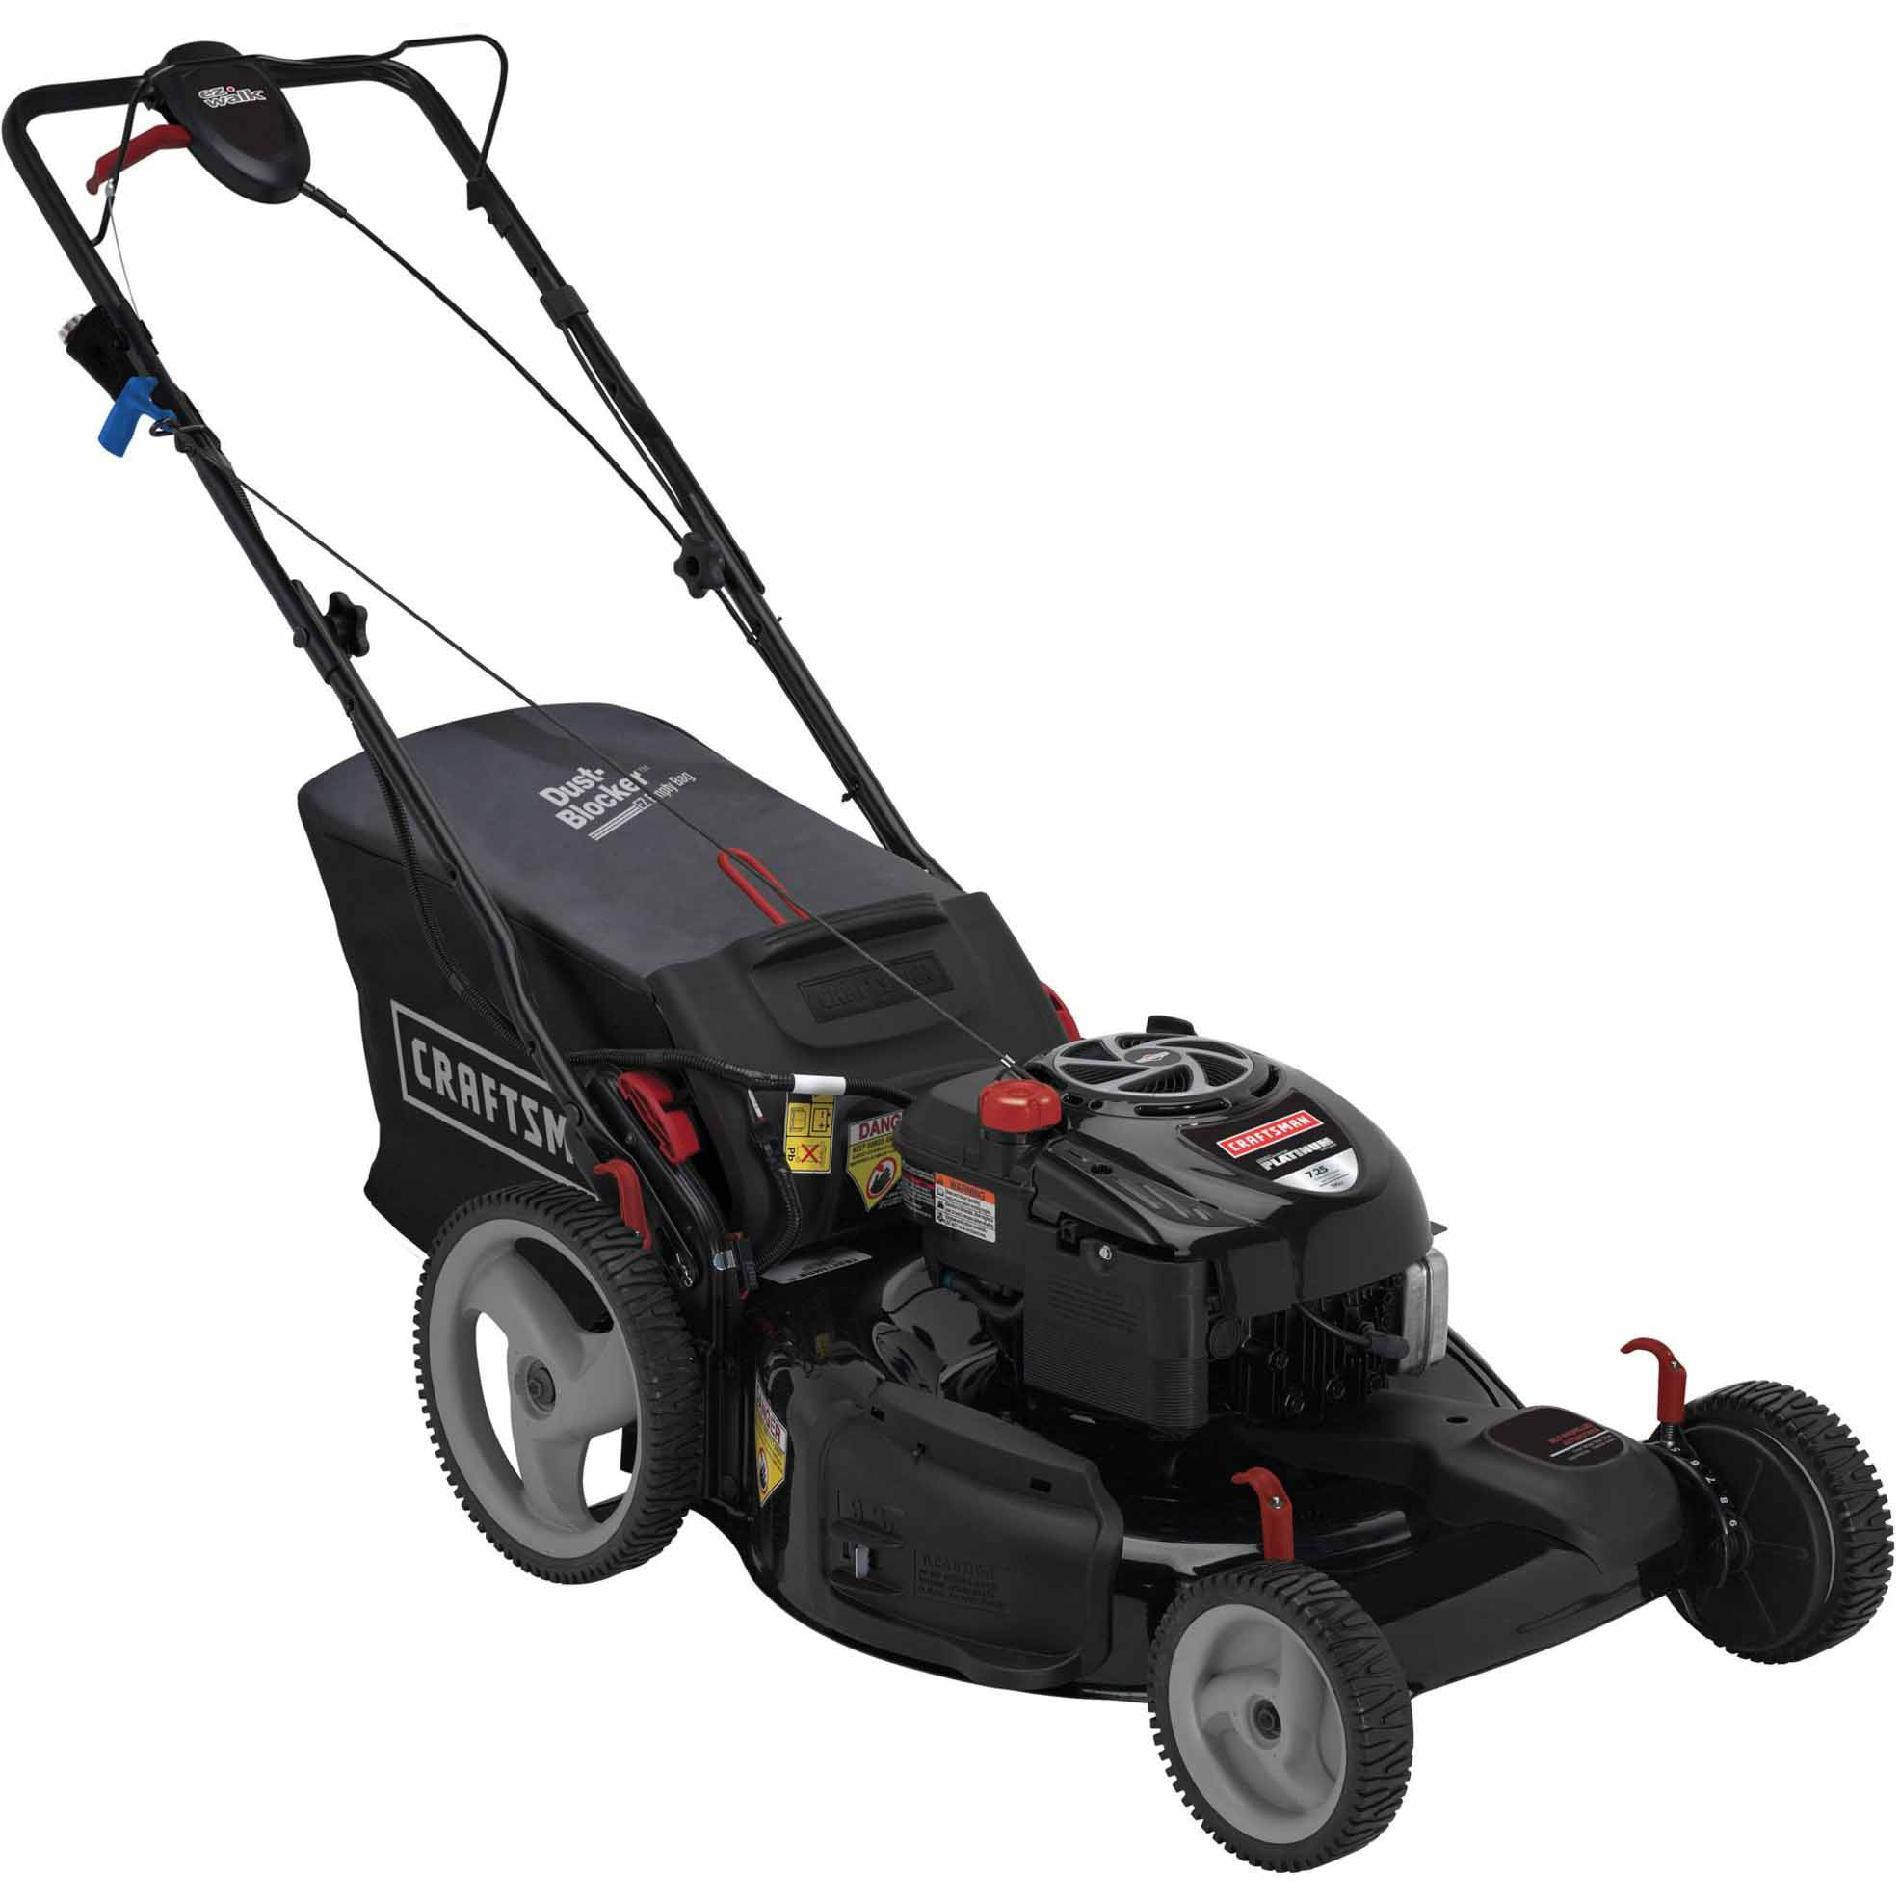 "Craftsman 190cc* Briggs & Stratton Platinum Engine, 22"" Front Drive Self-Propelled EZ Lawn Mower"